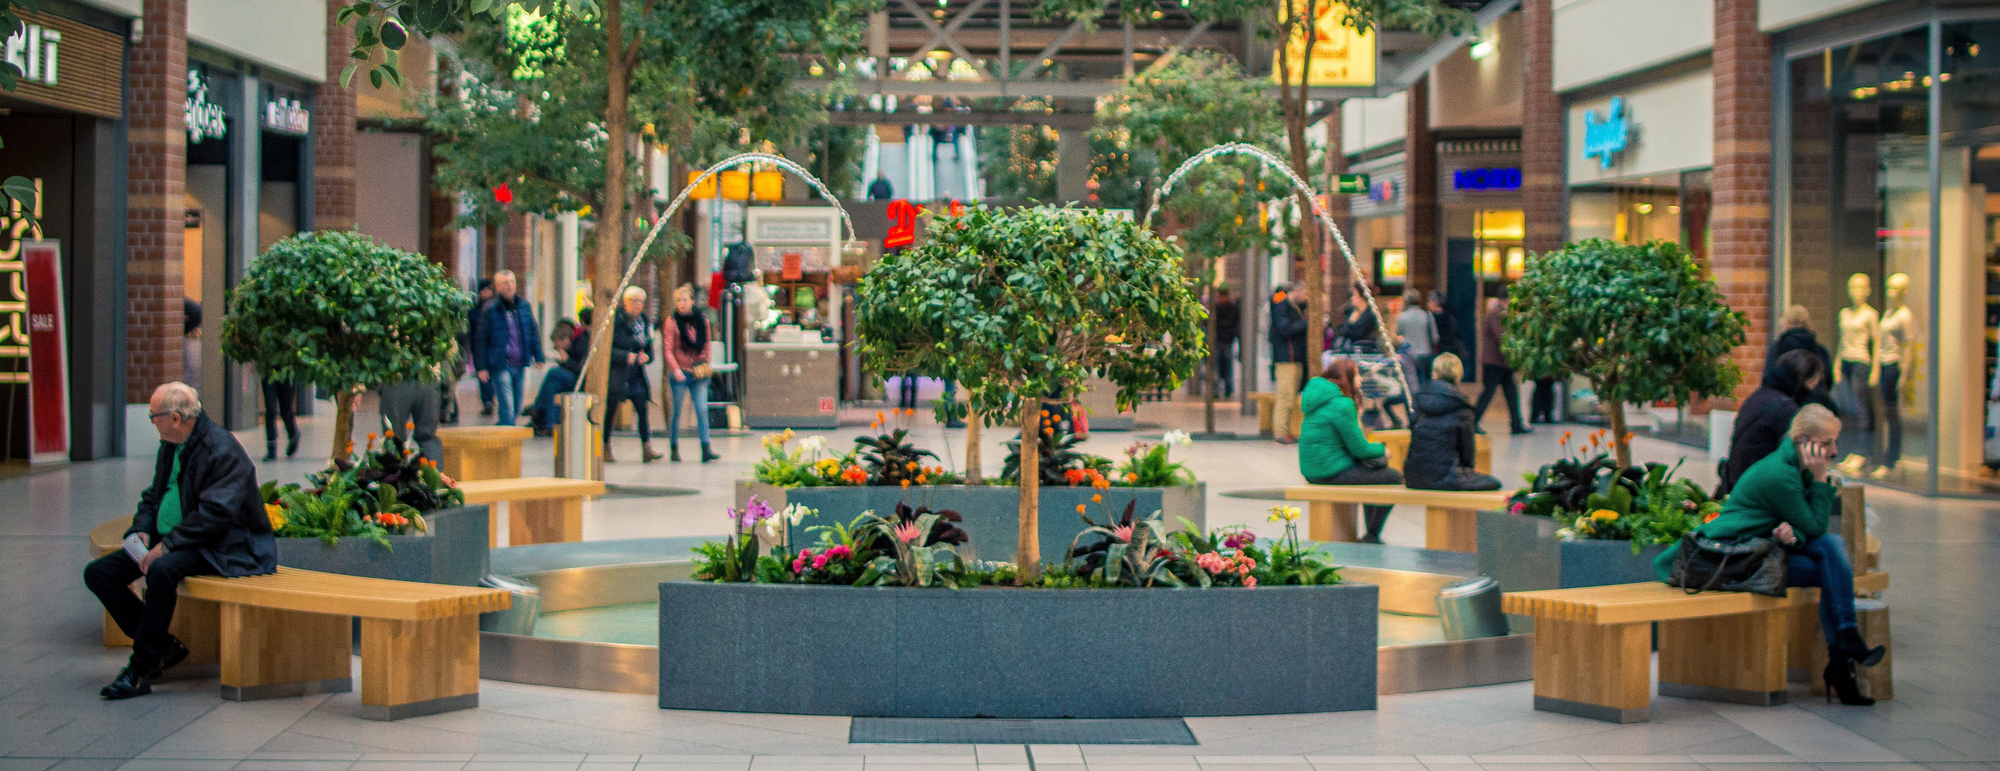 shopping center with benches and trees